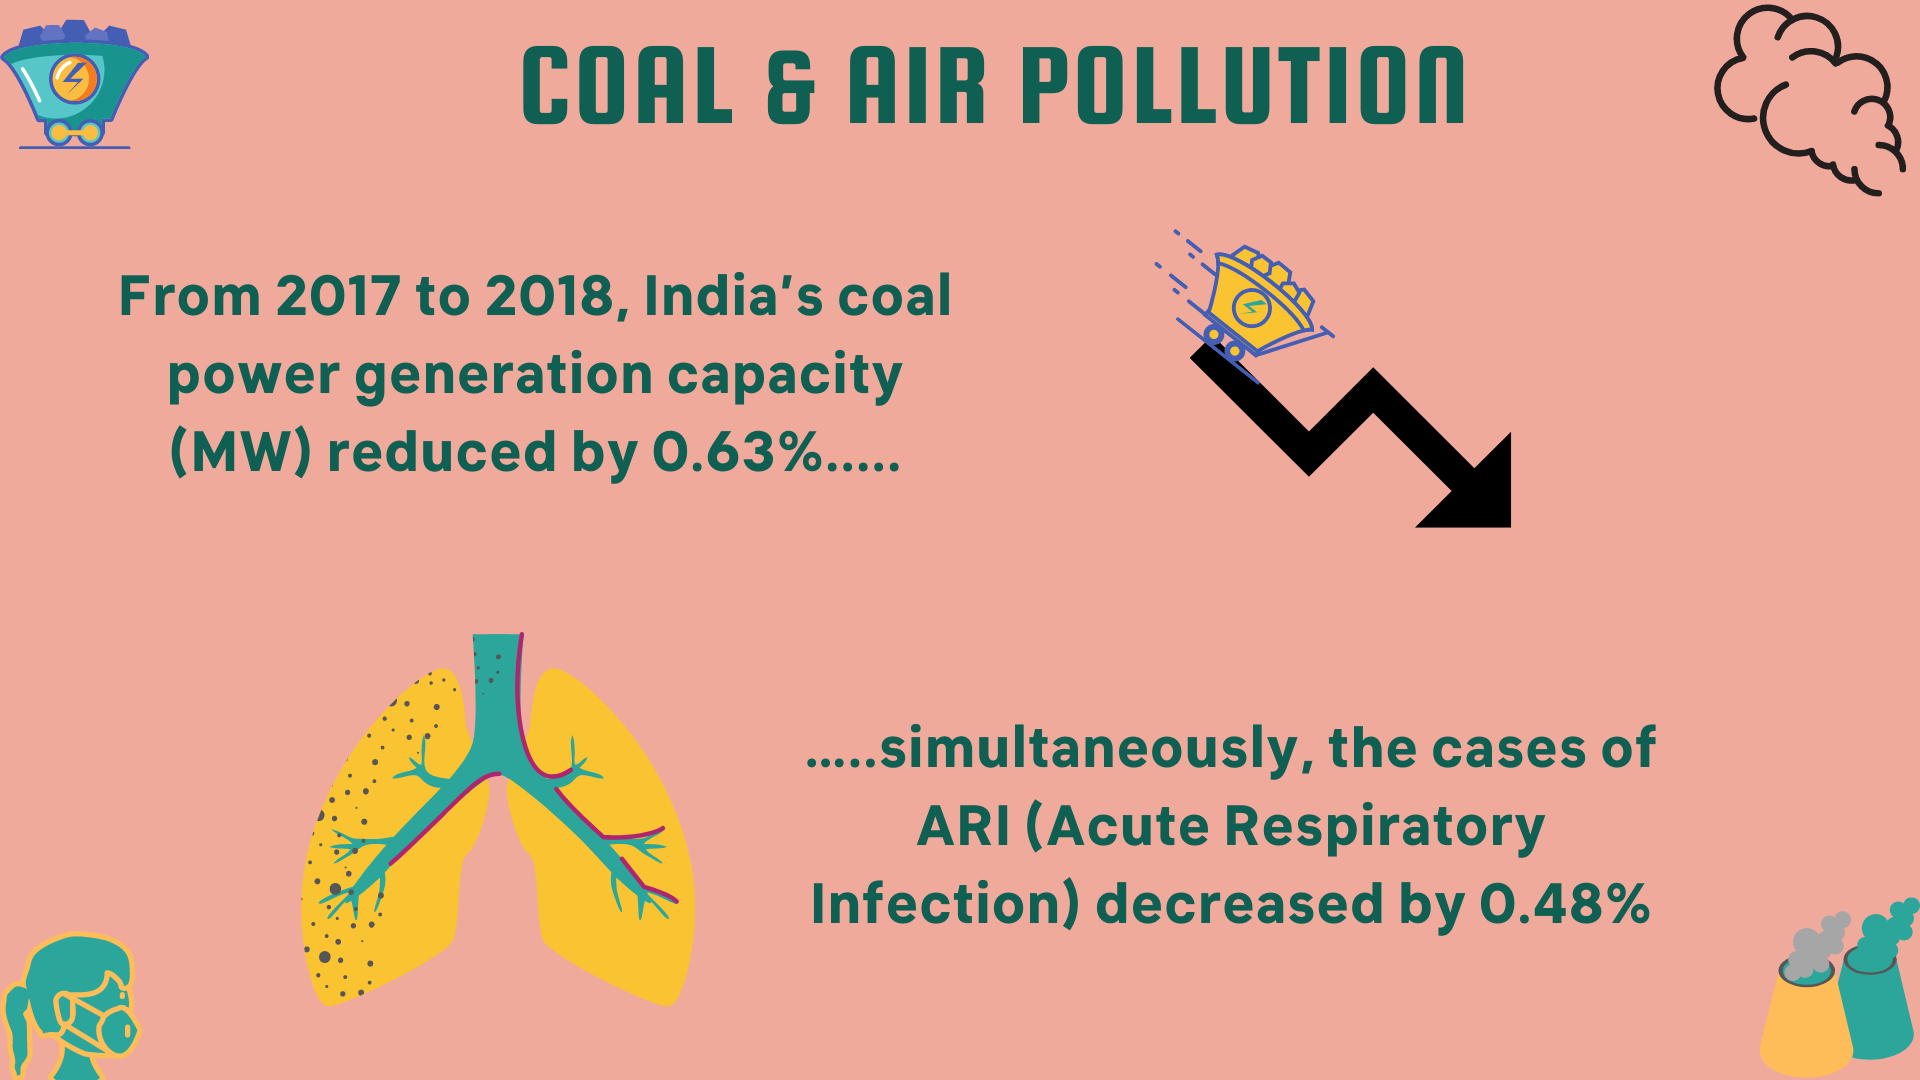 Coal and Air pollution 3